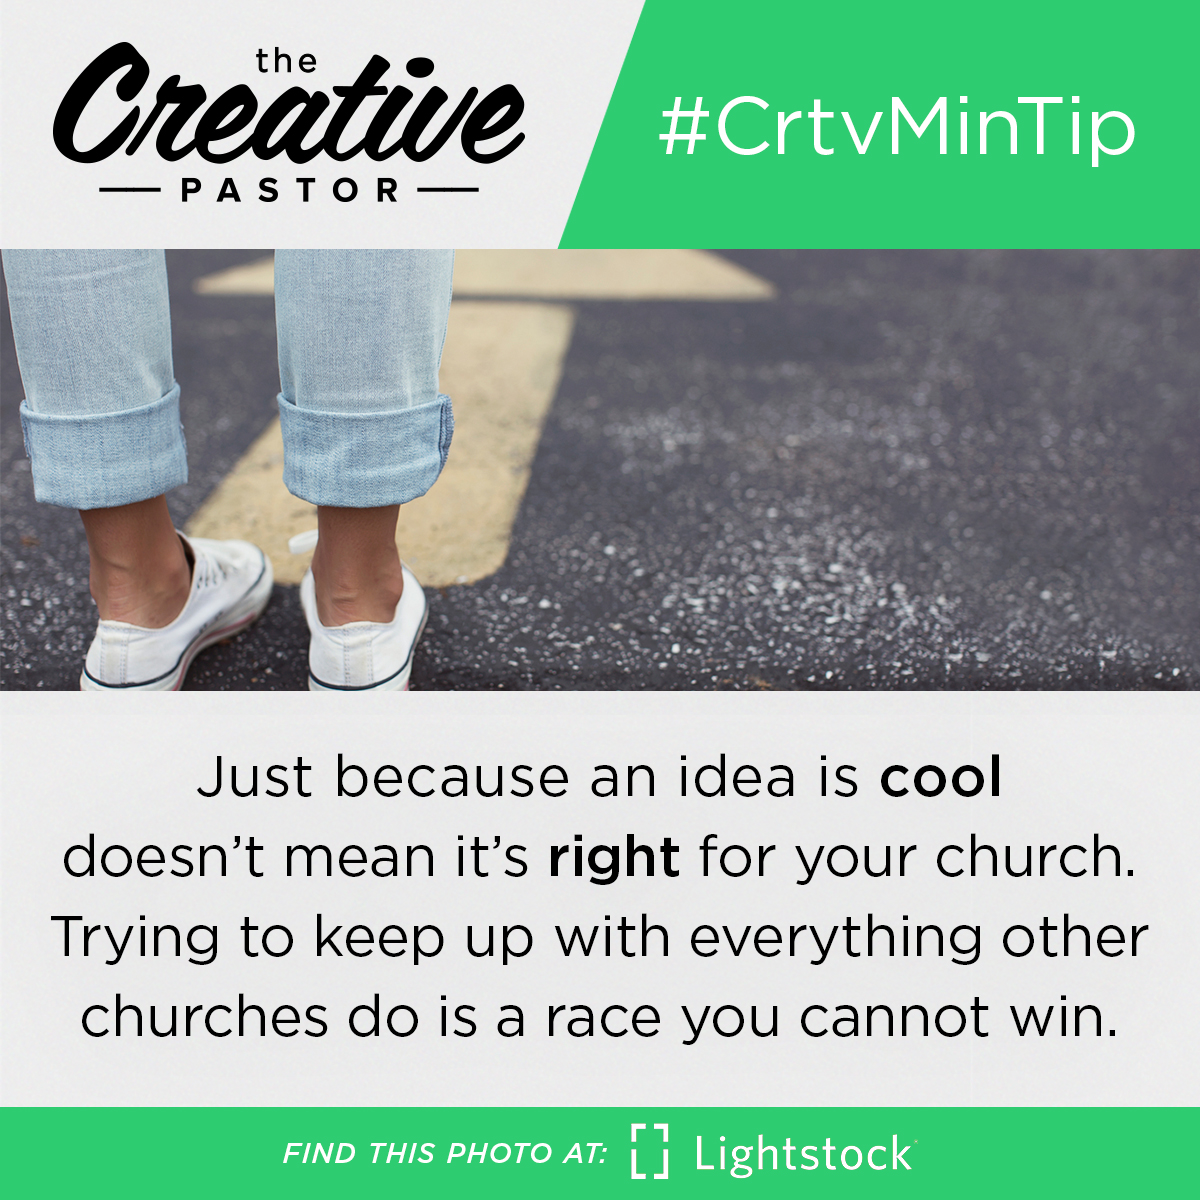 #CrtvMinTip: Just because an idea is cool doesn't mean it's right for your church. Trying to keep up with everything other churches do is a race you cannot win.